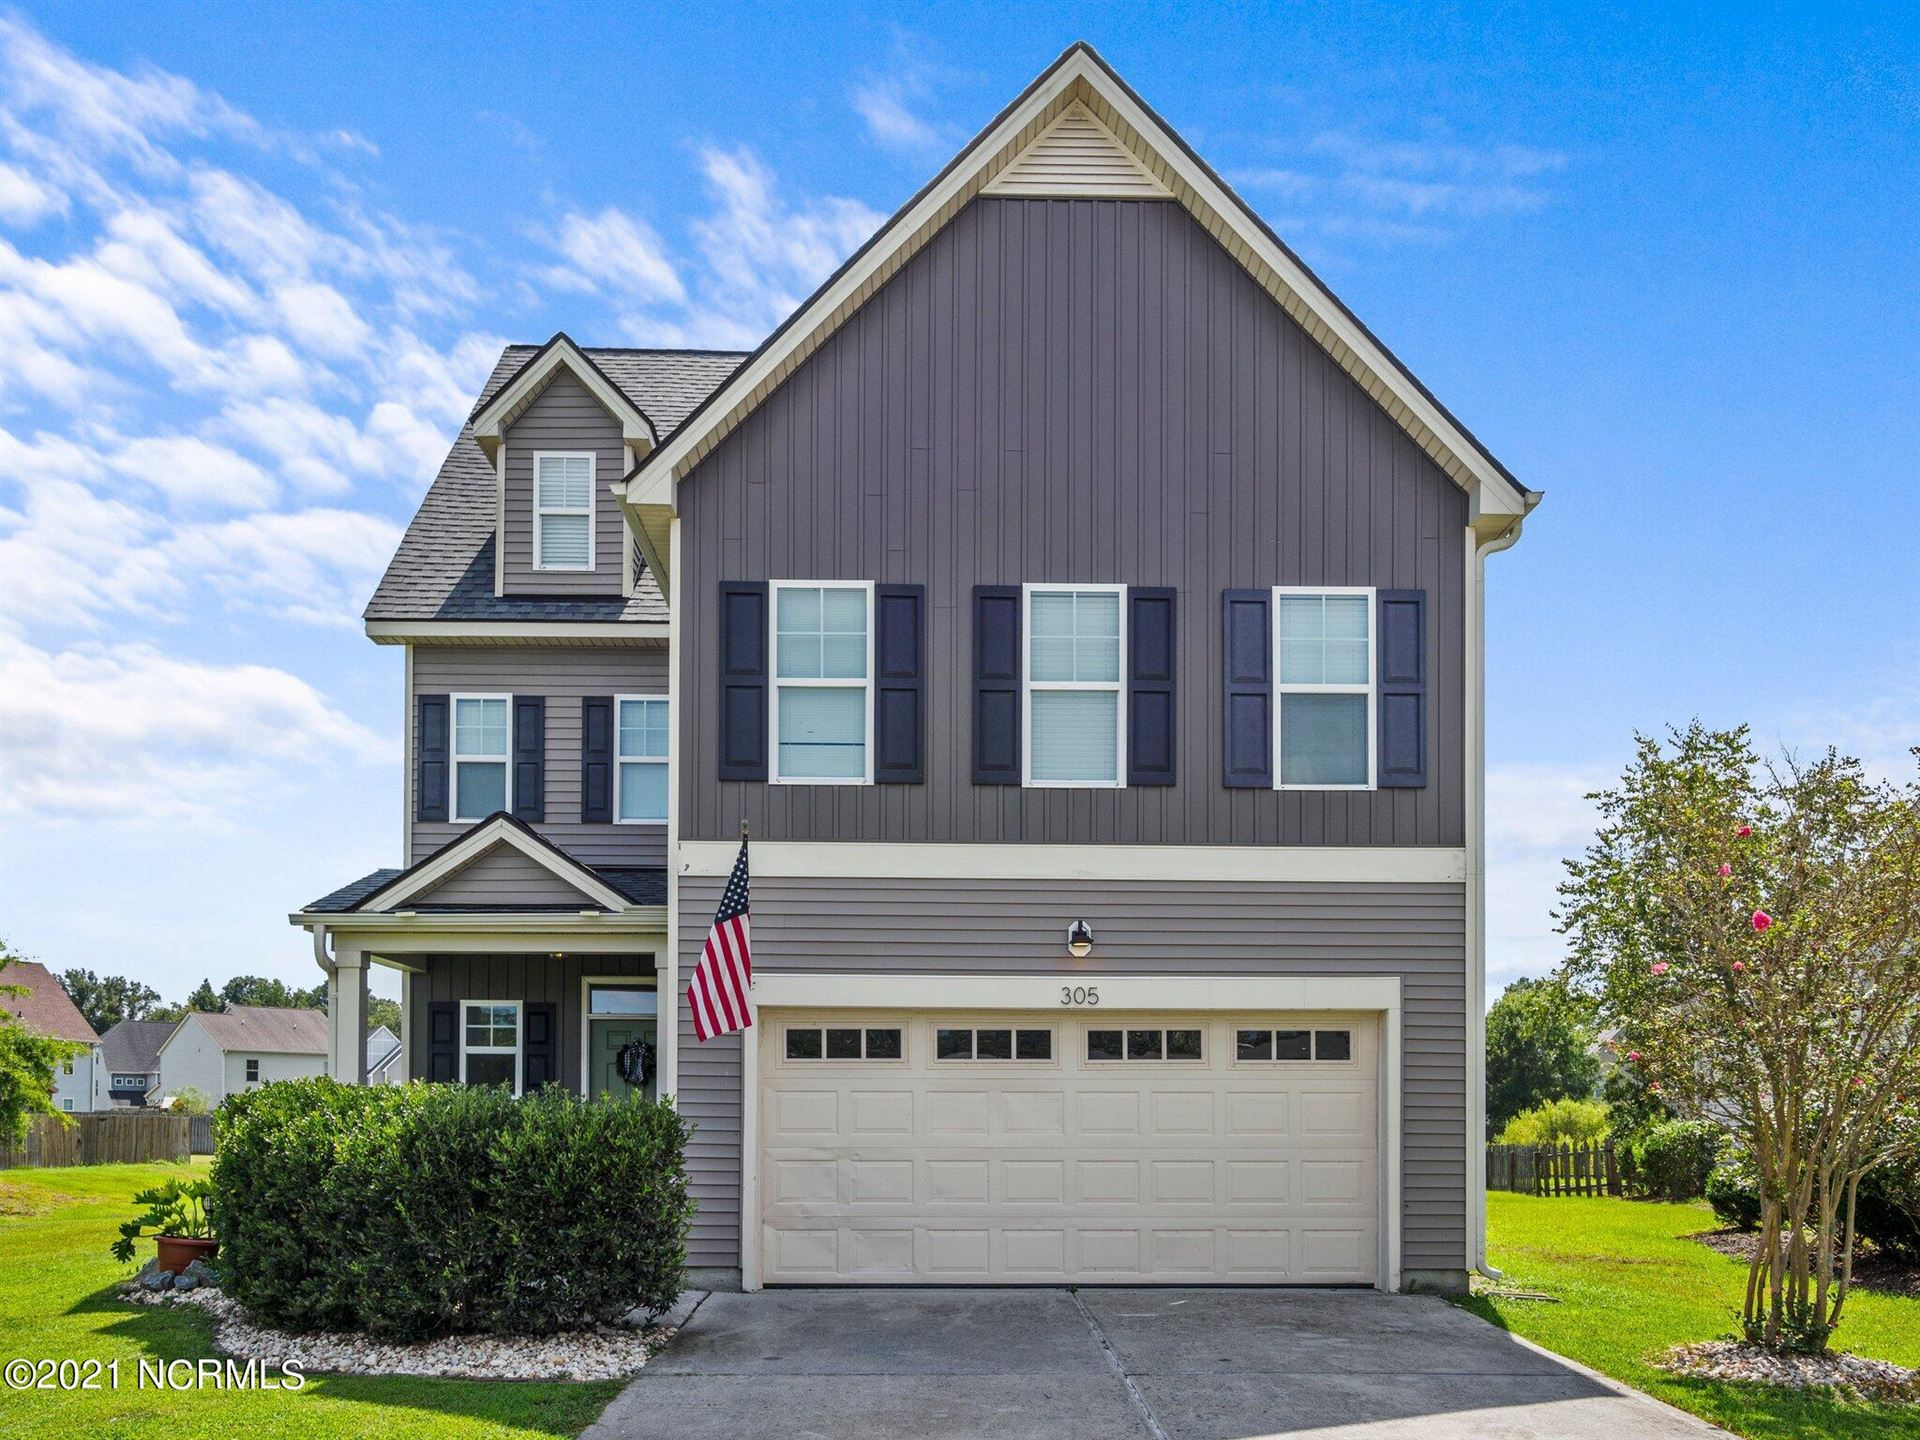 Photo of 305 Pebble Shore Drive, Sneads Ferry, NC 28460 (MLS # 100288723)